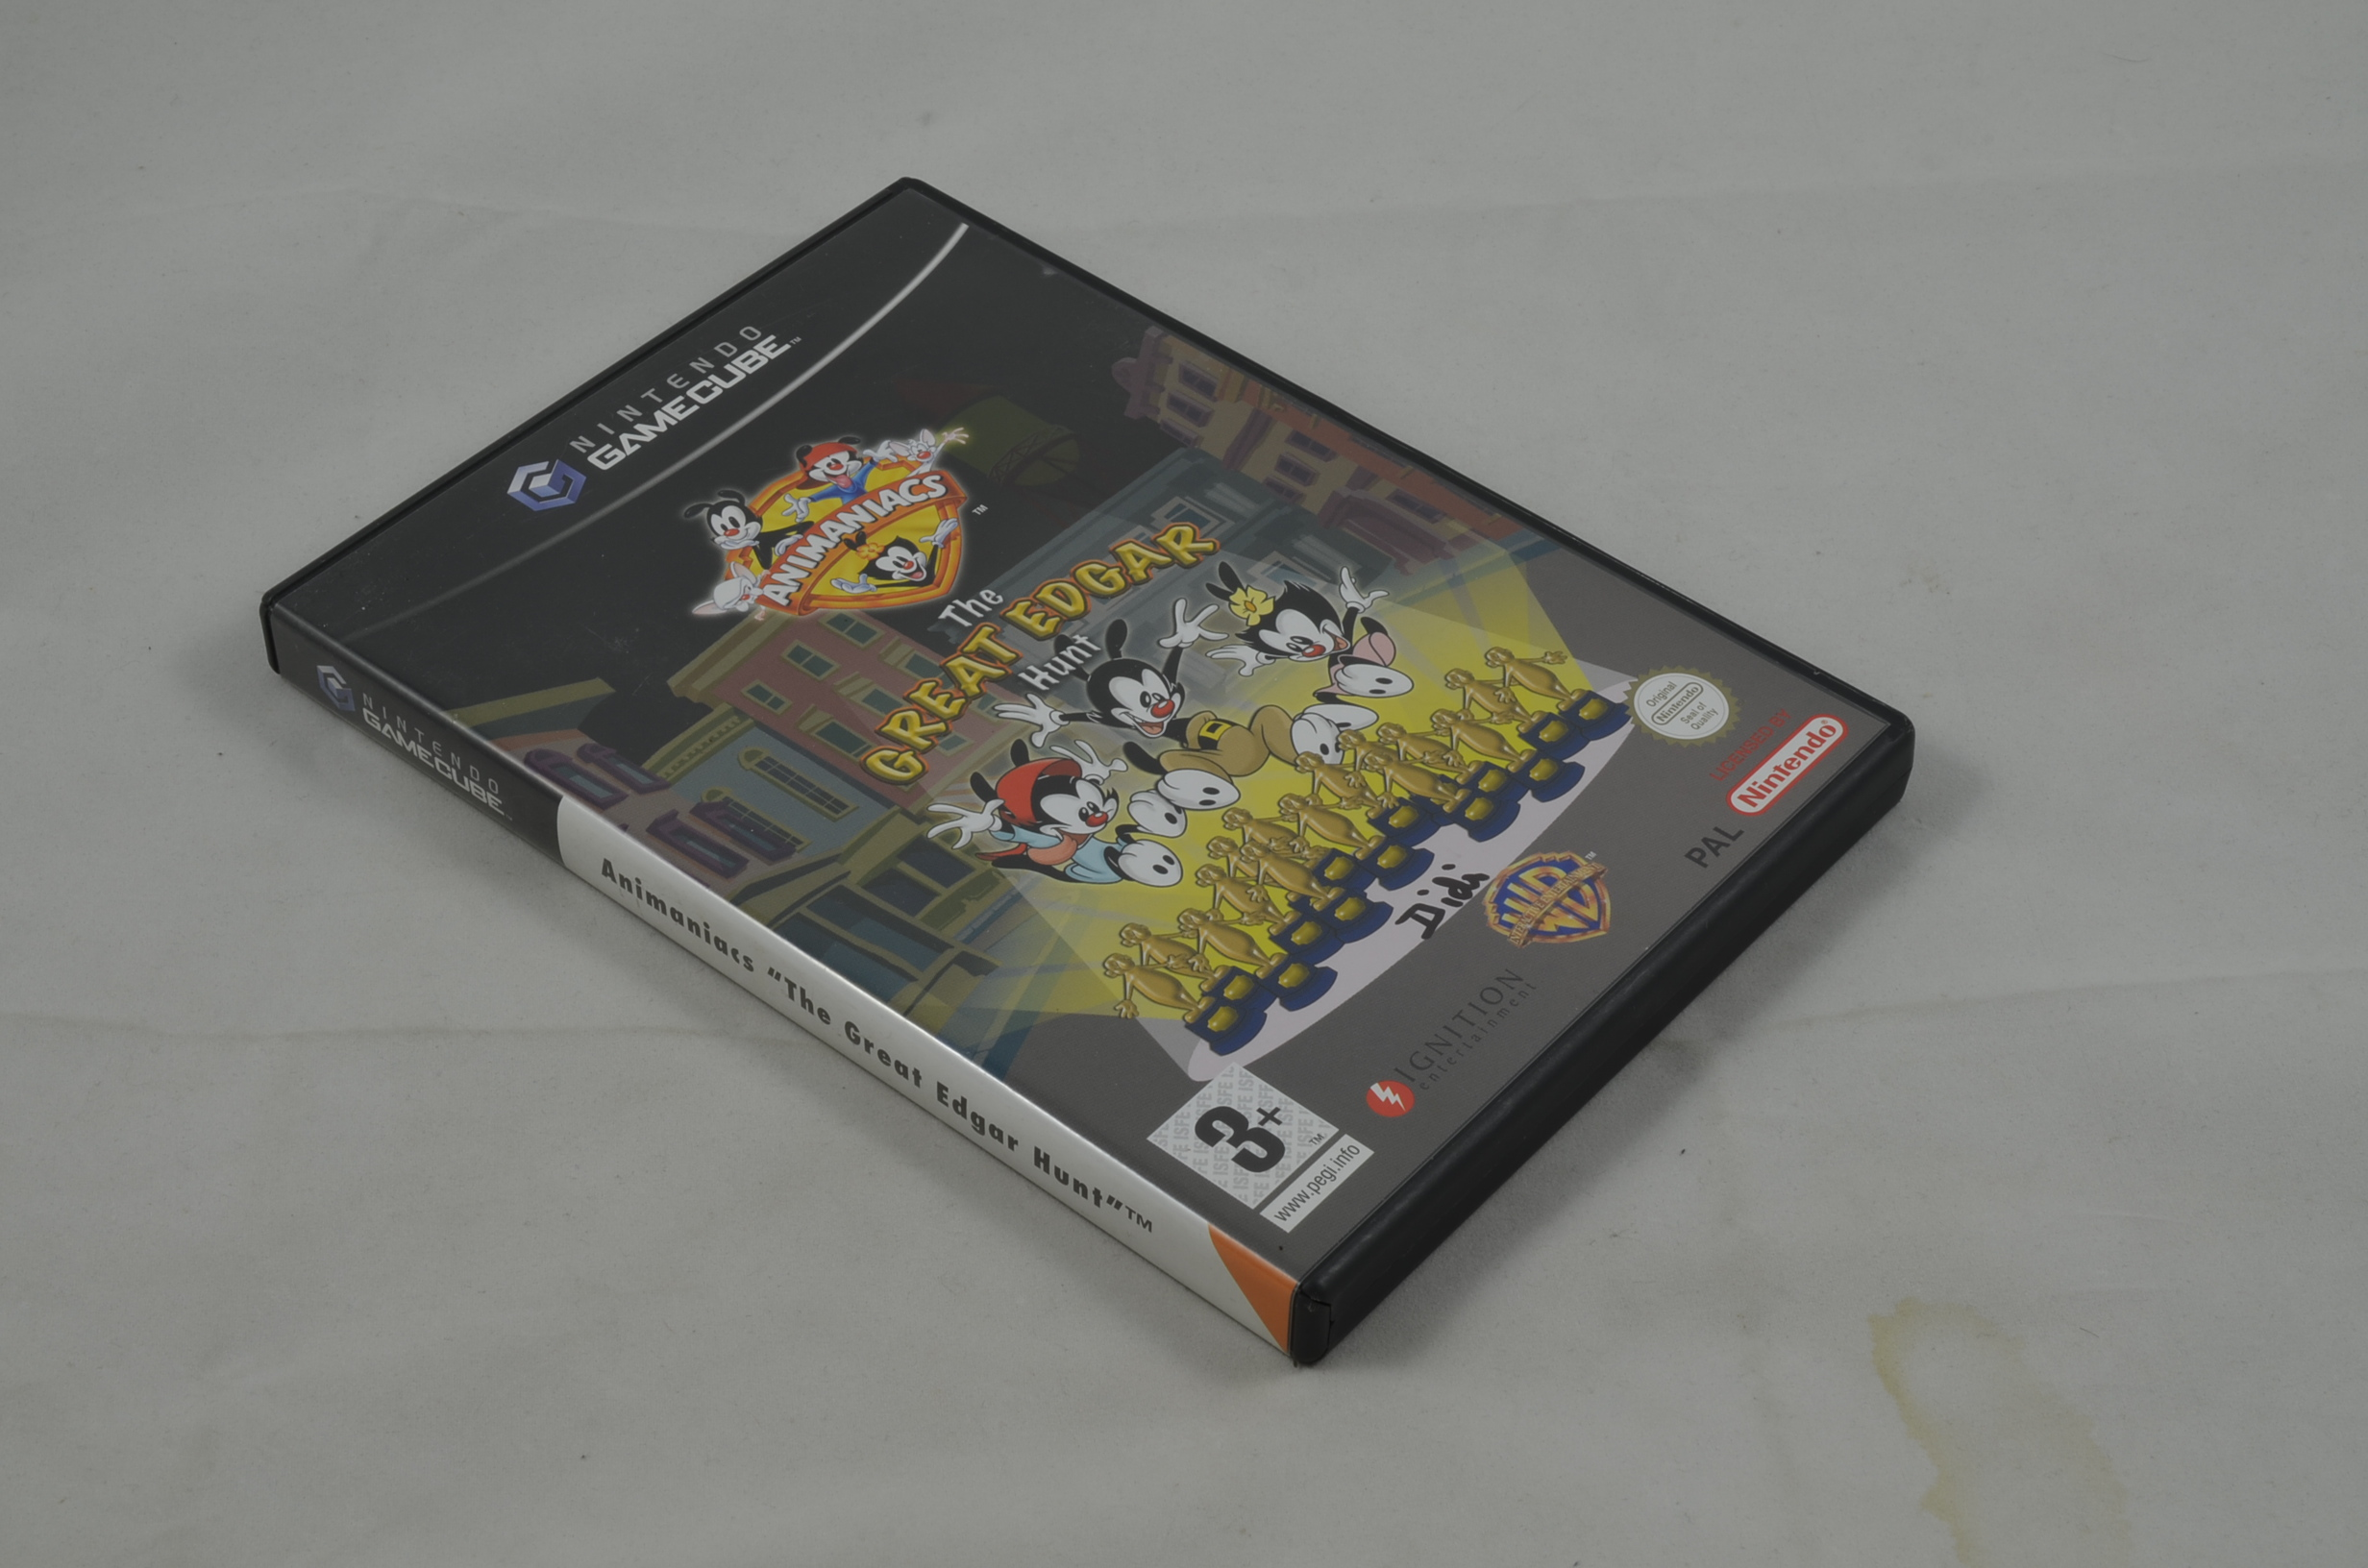 Produktbild von Animaniacs The Great Edgar Hunt GameCube Spiel CIB (gut)